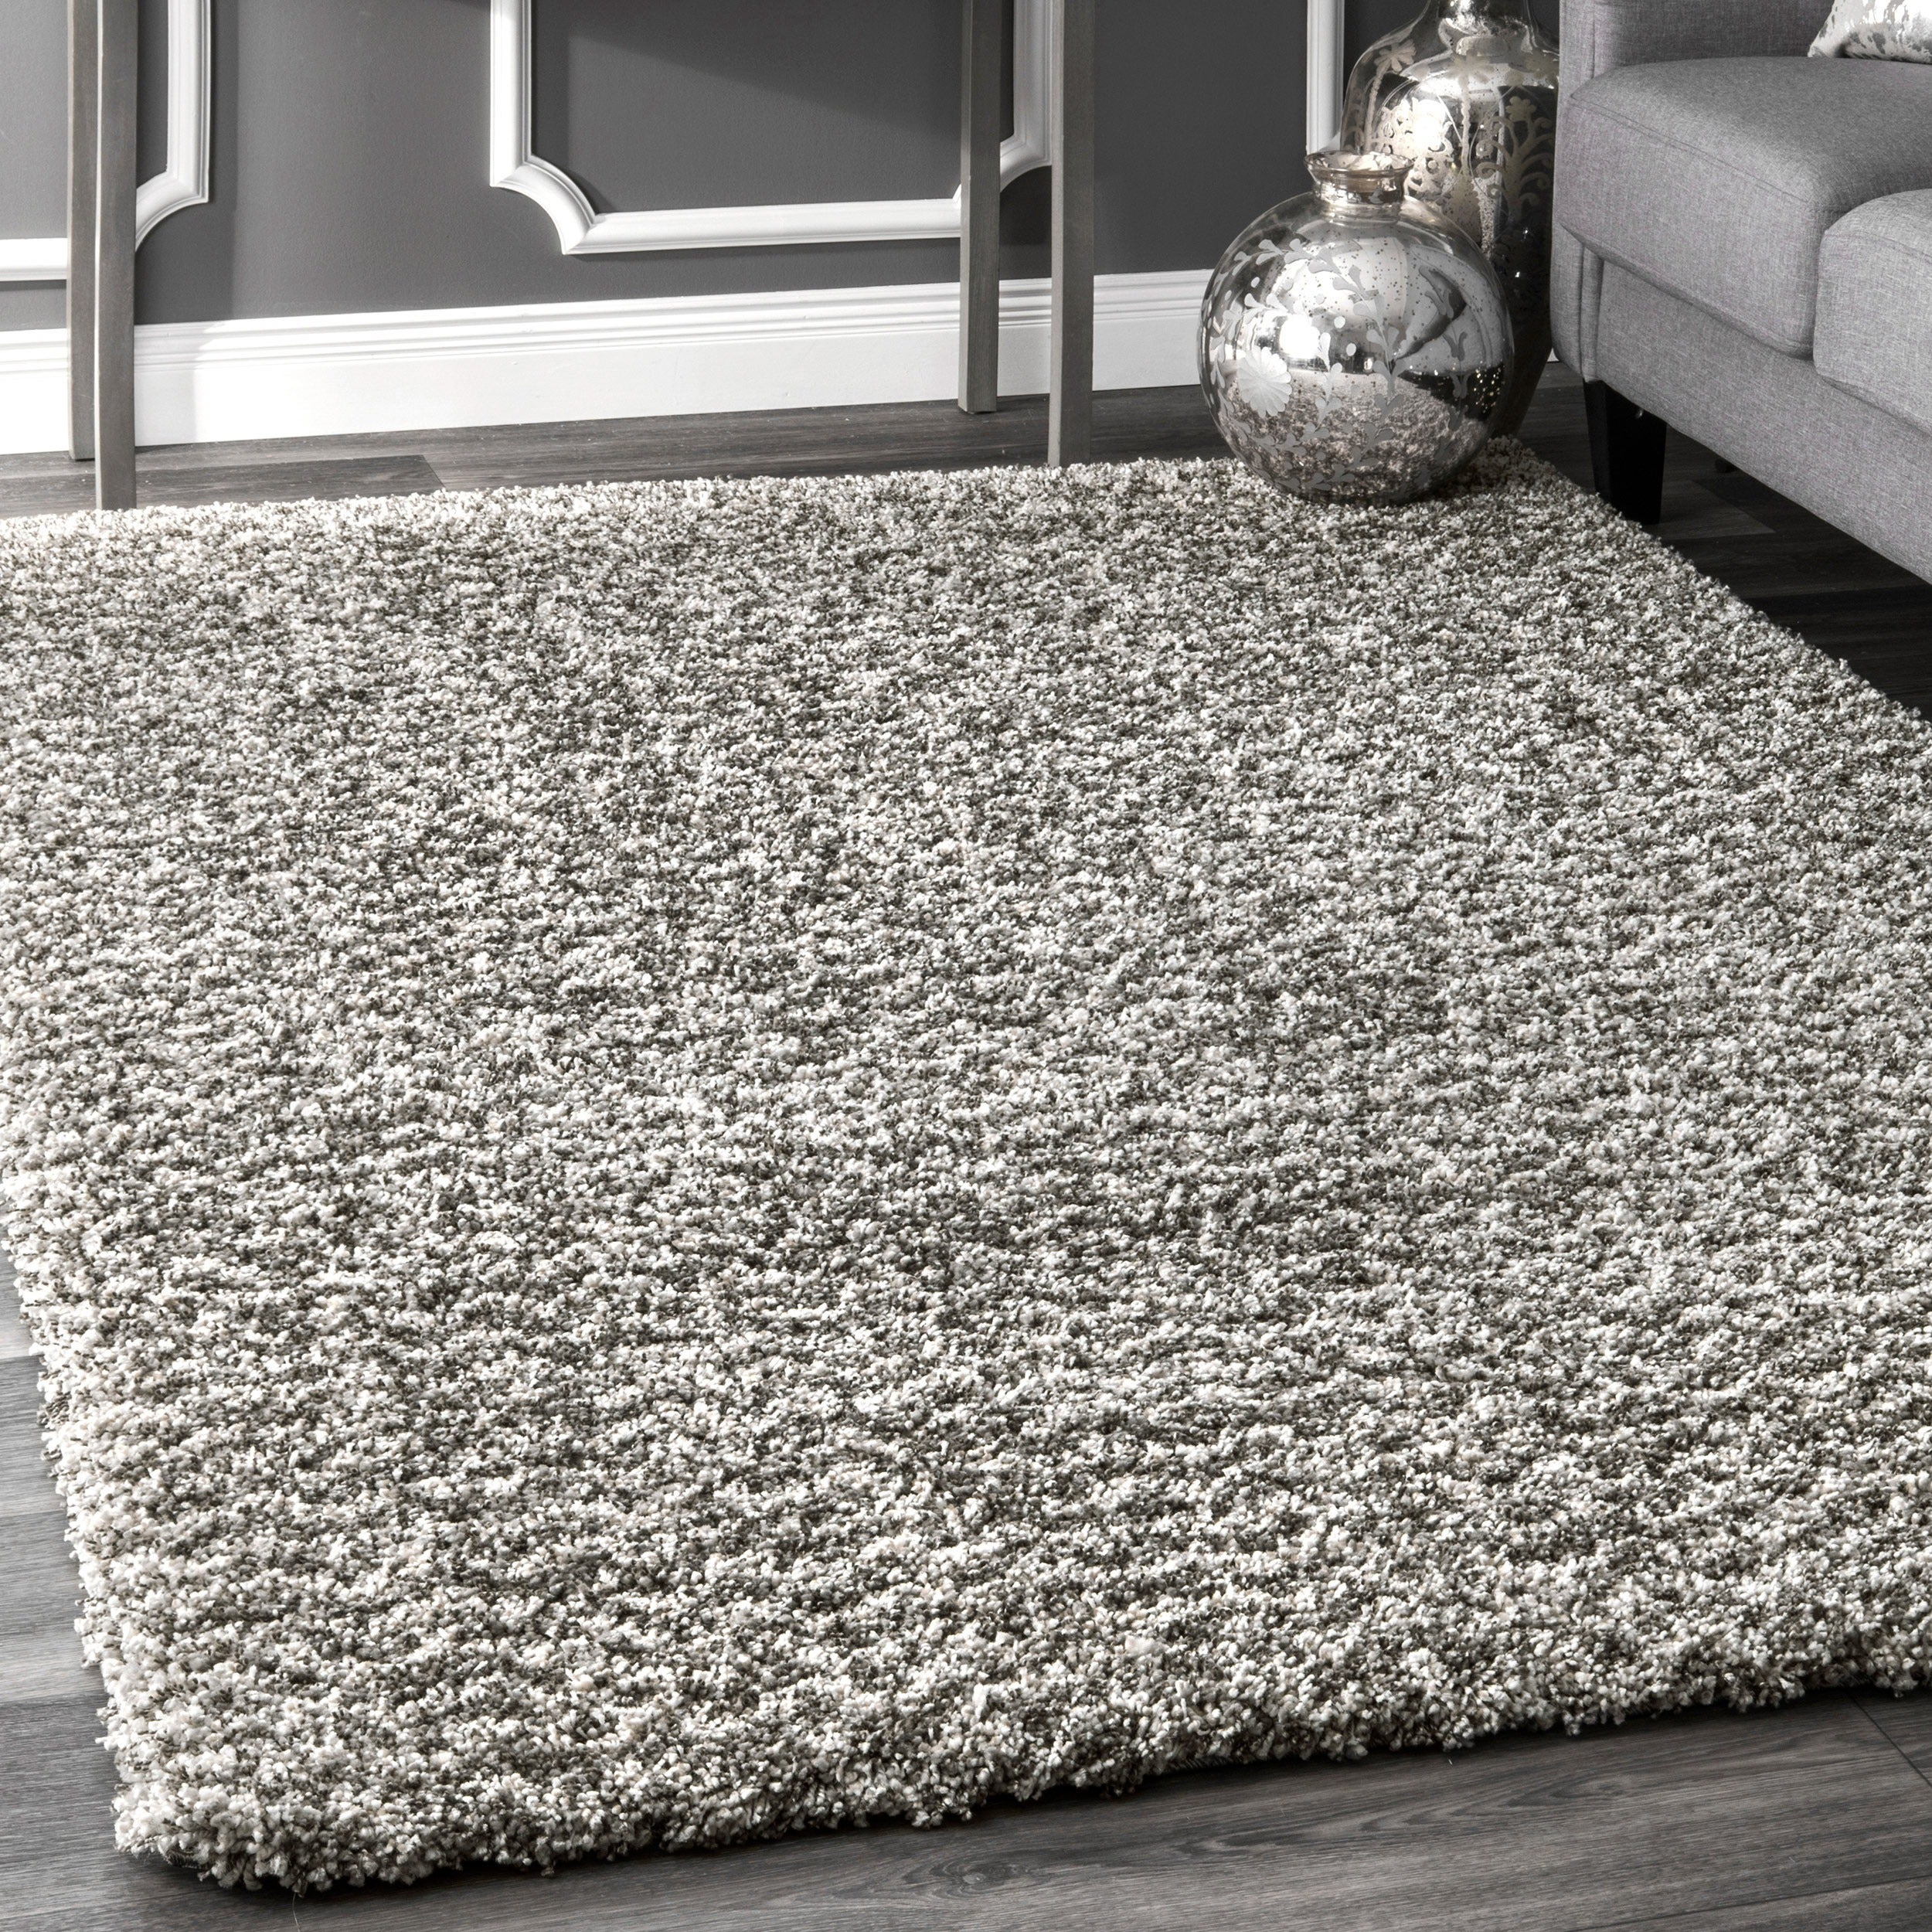 rug and product list rugs white brown black p birmingham woven dash cotton birminghamblackwovencottonrug albert zoom